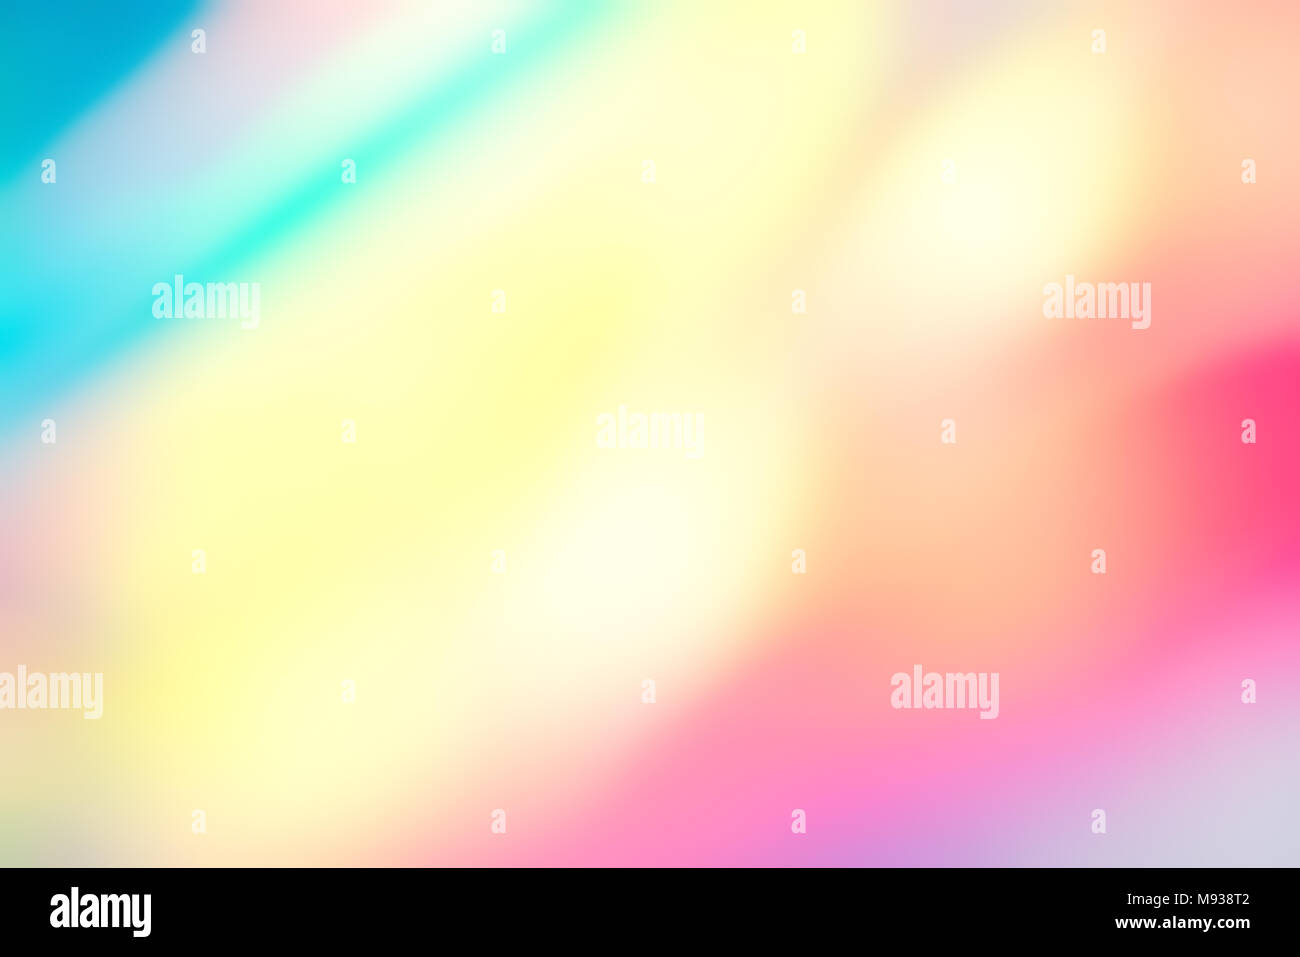 Blur holographic neon foil background. Stock Photo